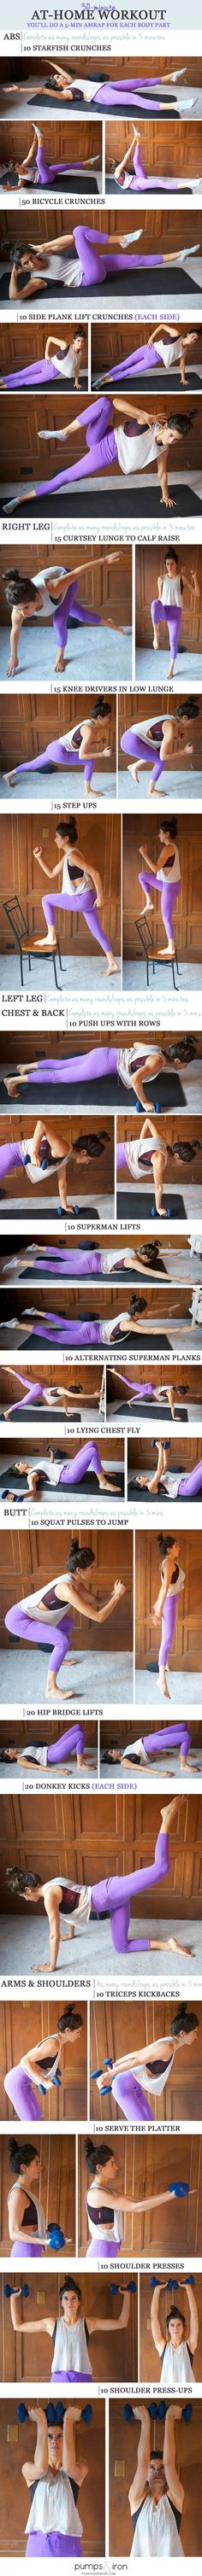 30-Minute At-Home Workout -- you'll spend 5 minutes on each body part: